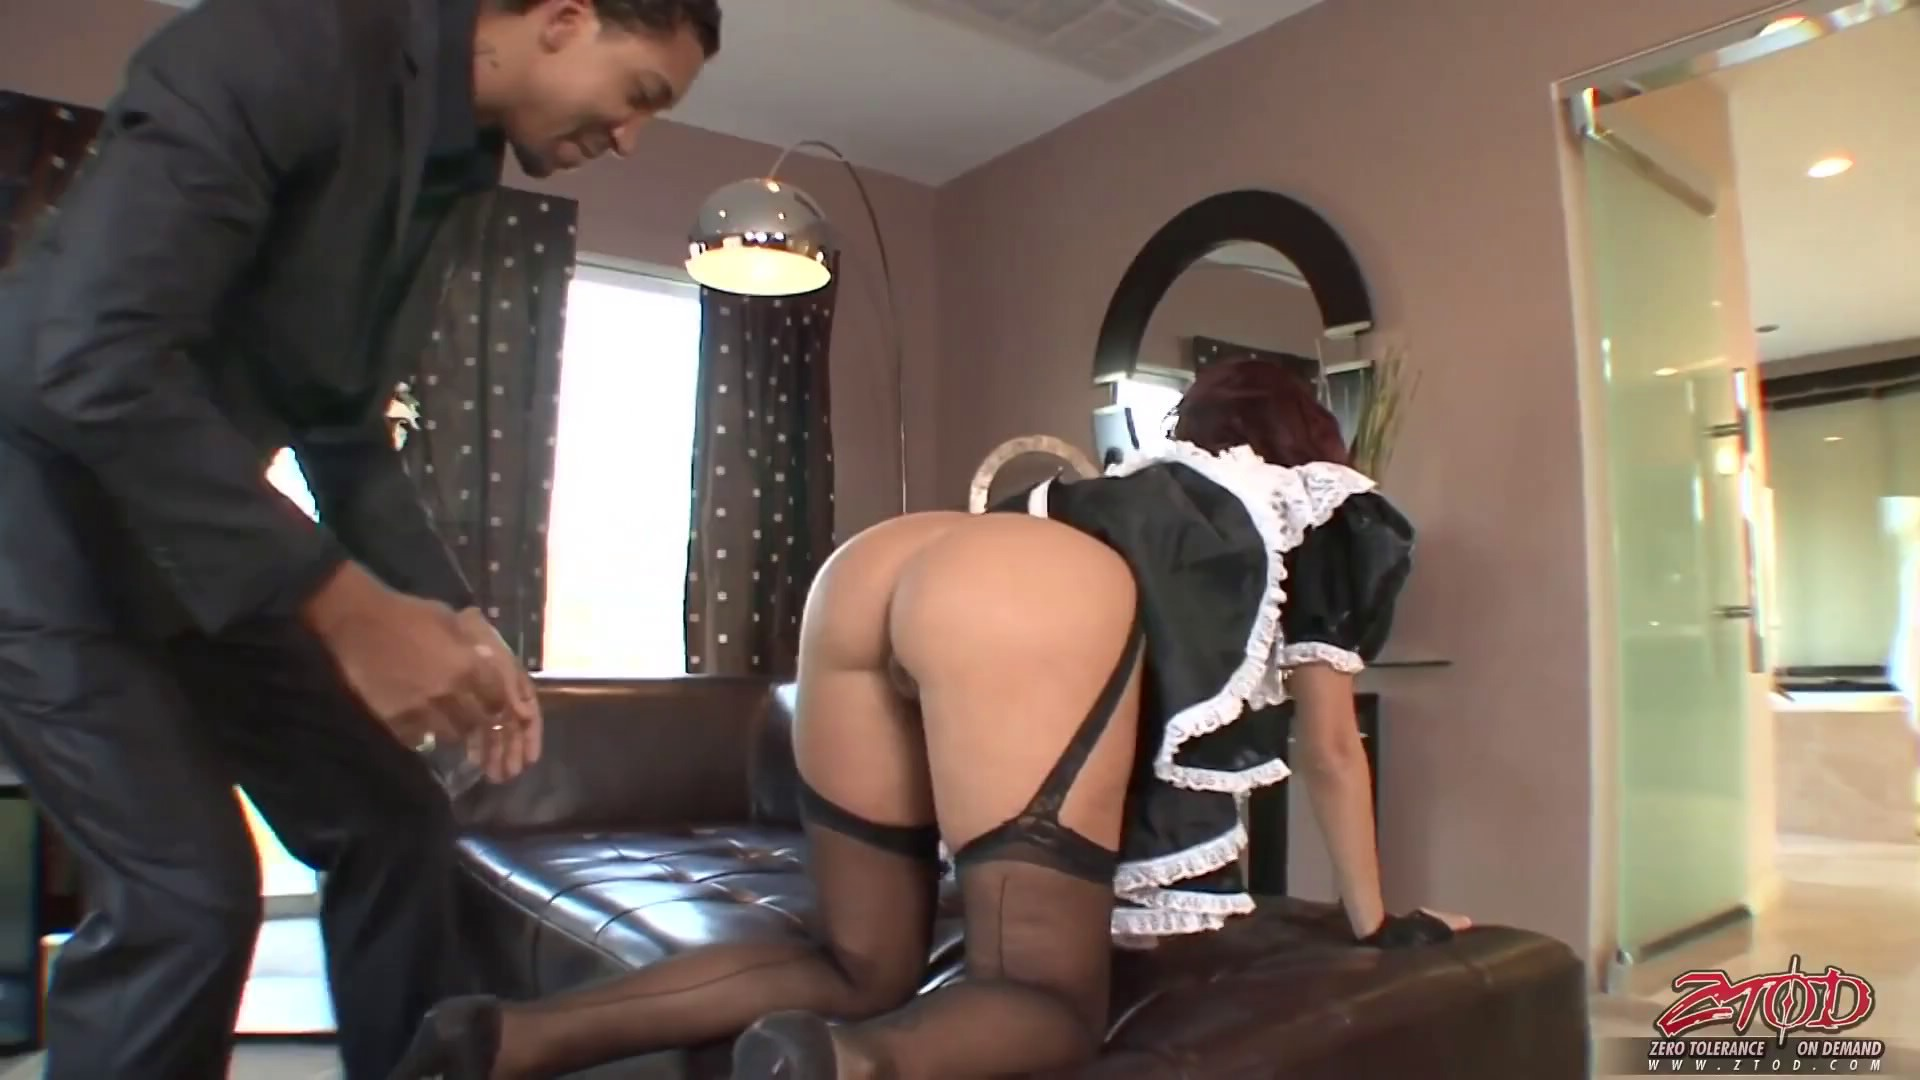 Maids fuck guest homemade video